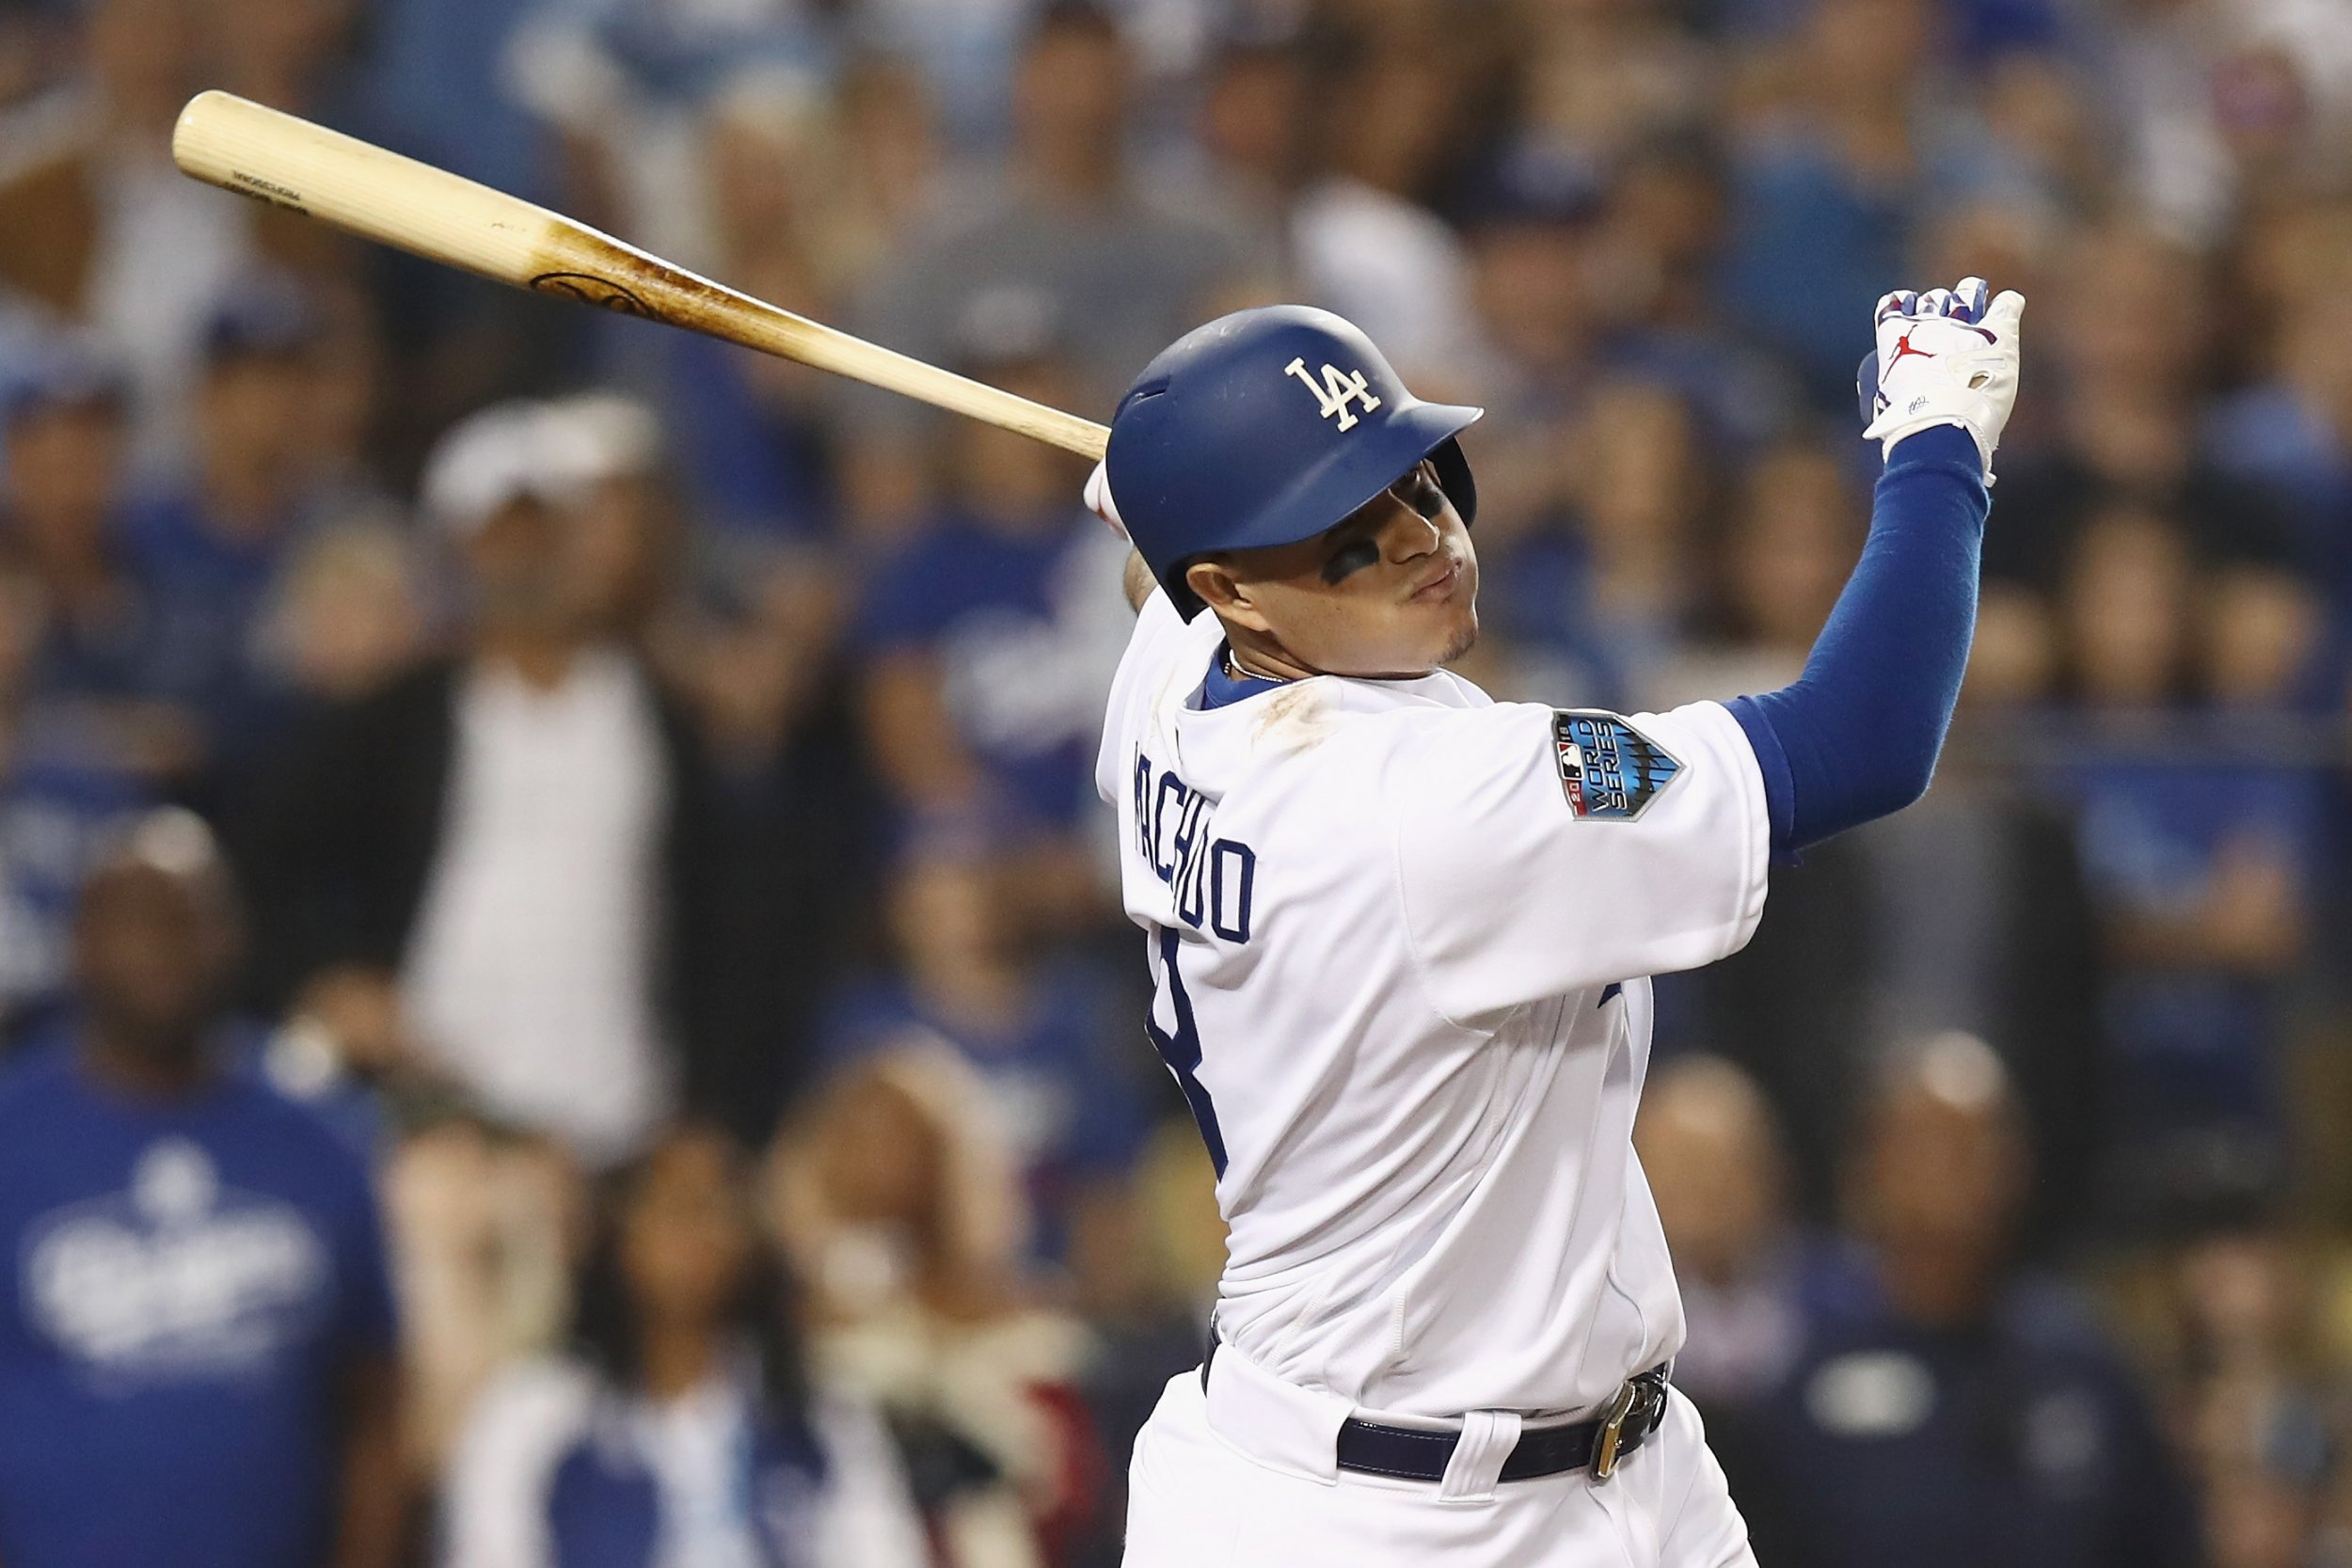 Manny Machado, Los Angeles Dodgers